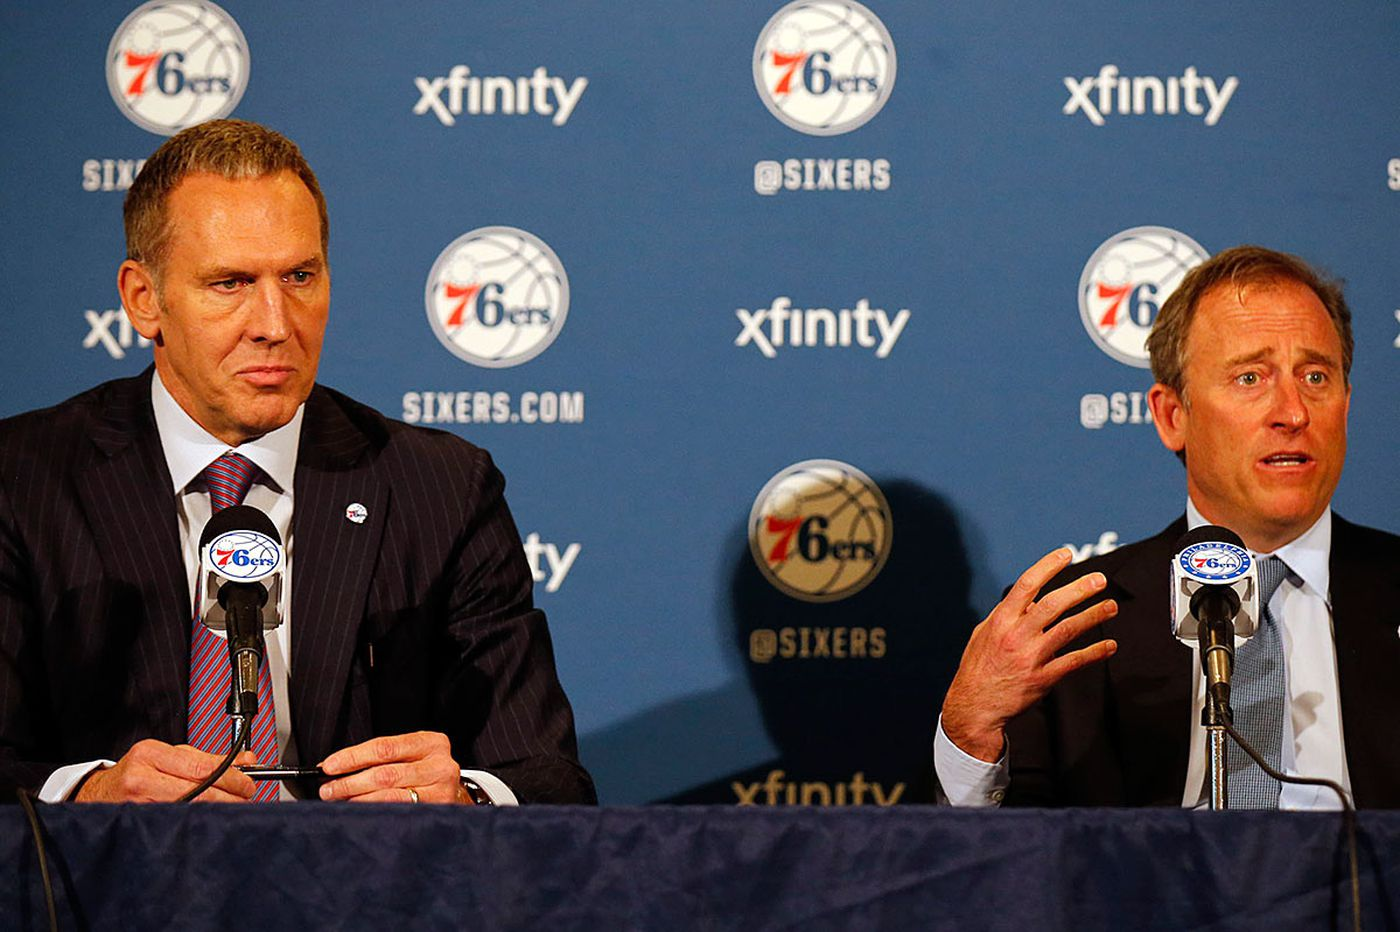 Sielski: In stringing everyone along, 76ers show things are same as always